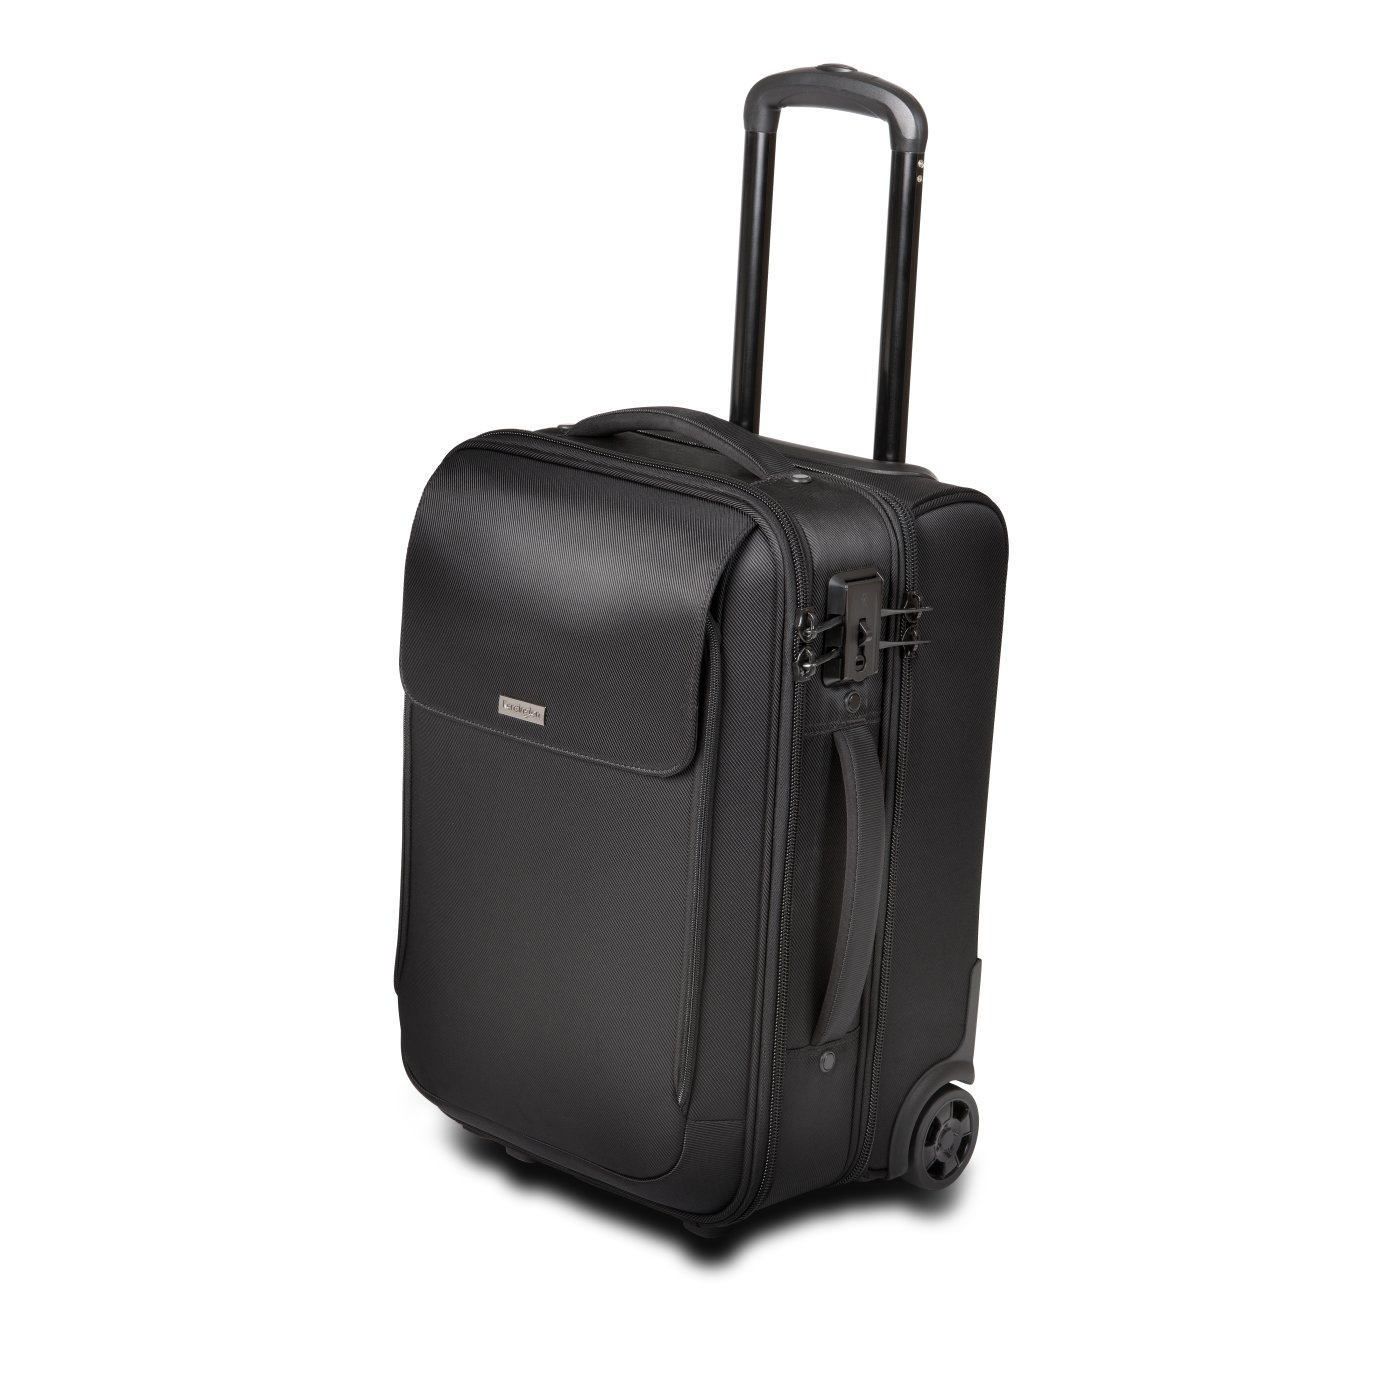 Kensington Products Laptop Bags Rollers Securetrek 17 Notebook Anti Theft Protector Overnight Roller